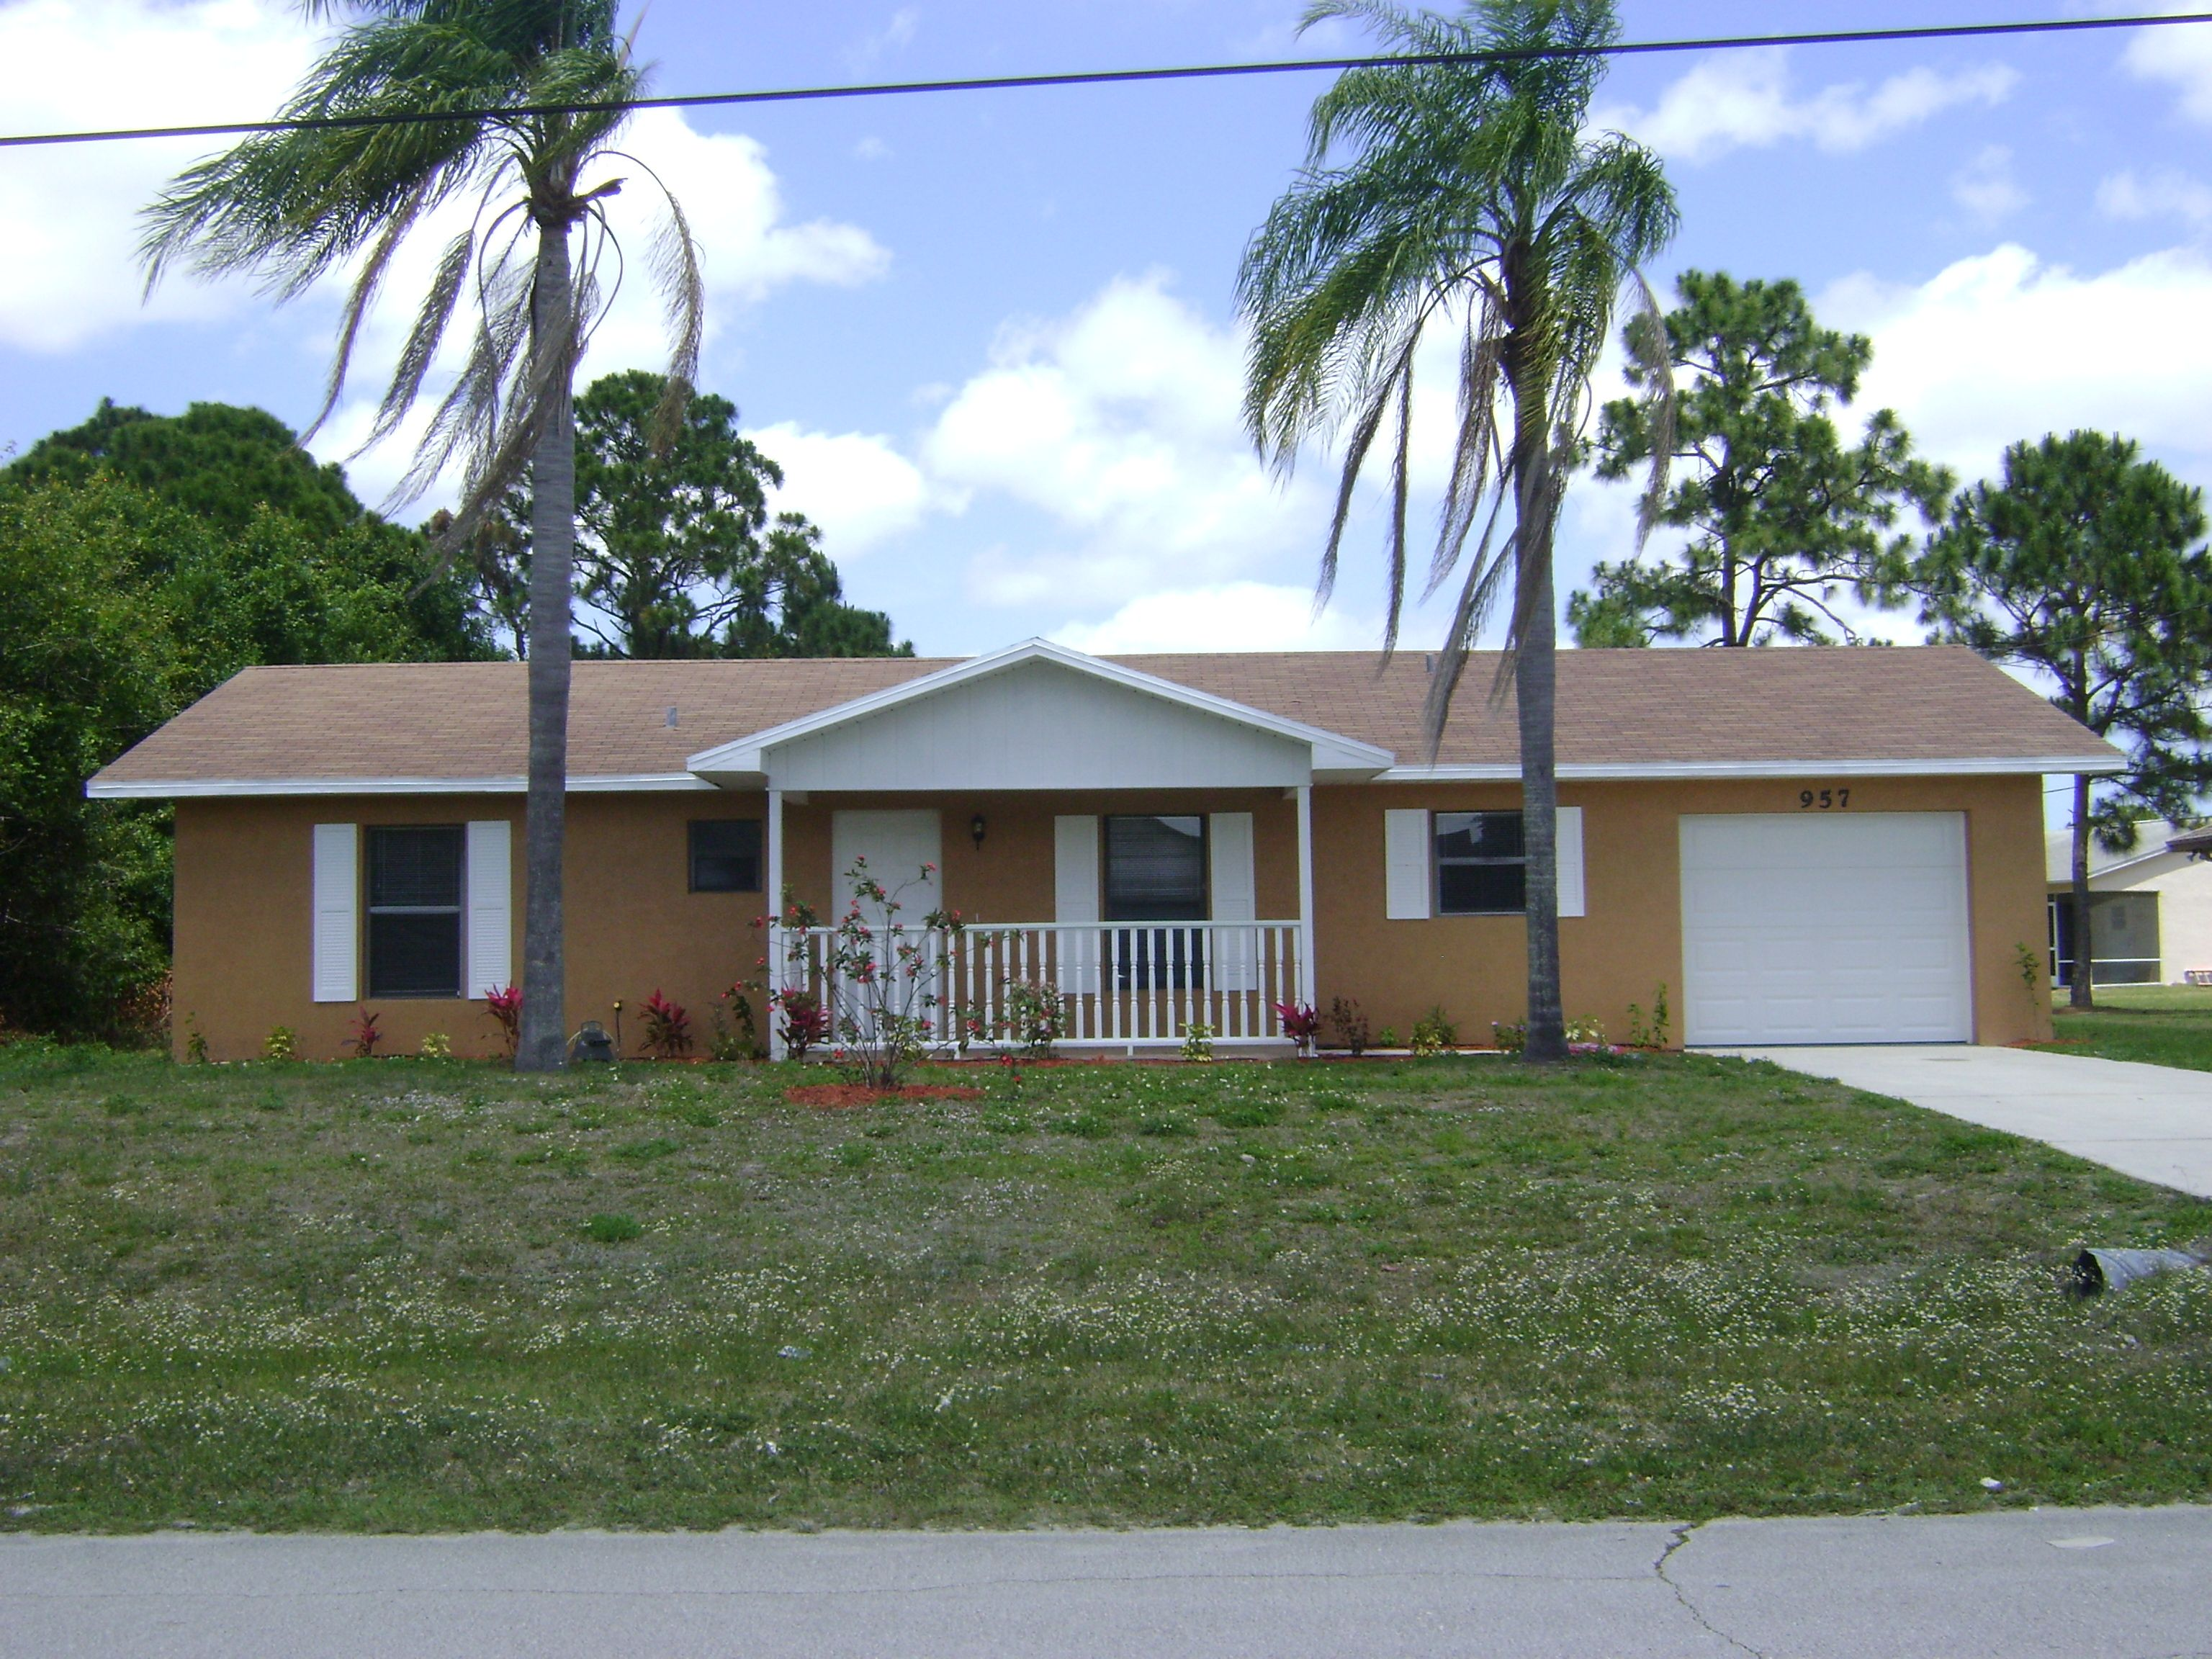 957 SW Alexandria Ave. Cozy little home for an upstart couple or emptynesters. Nestled in a quiet neighborhood in the heart of Port Saint Lucie, FL. Very close to Tradition for shopping and dining needs. $98,900 SOLD